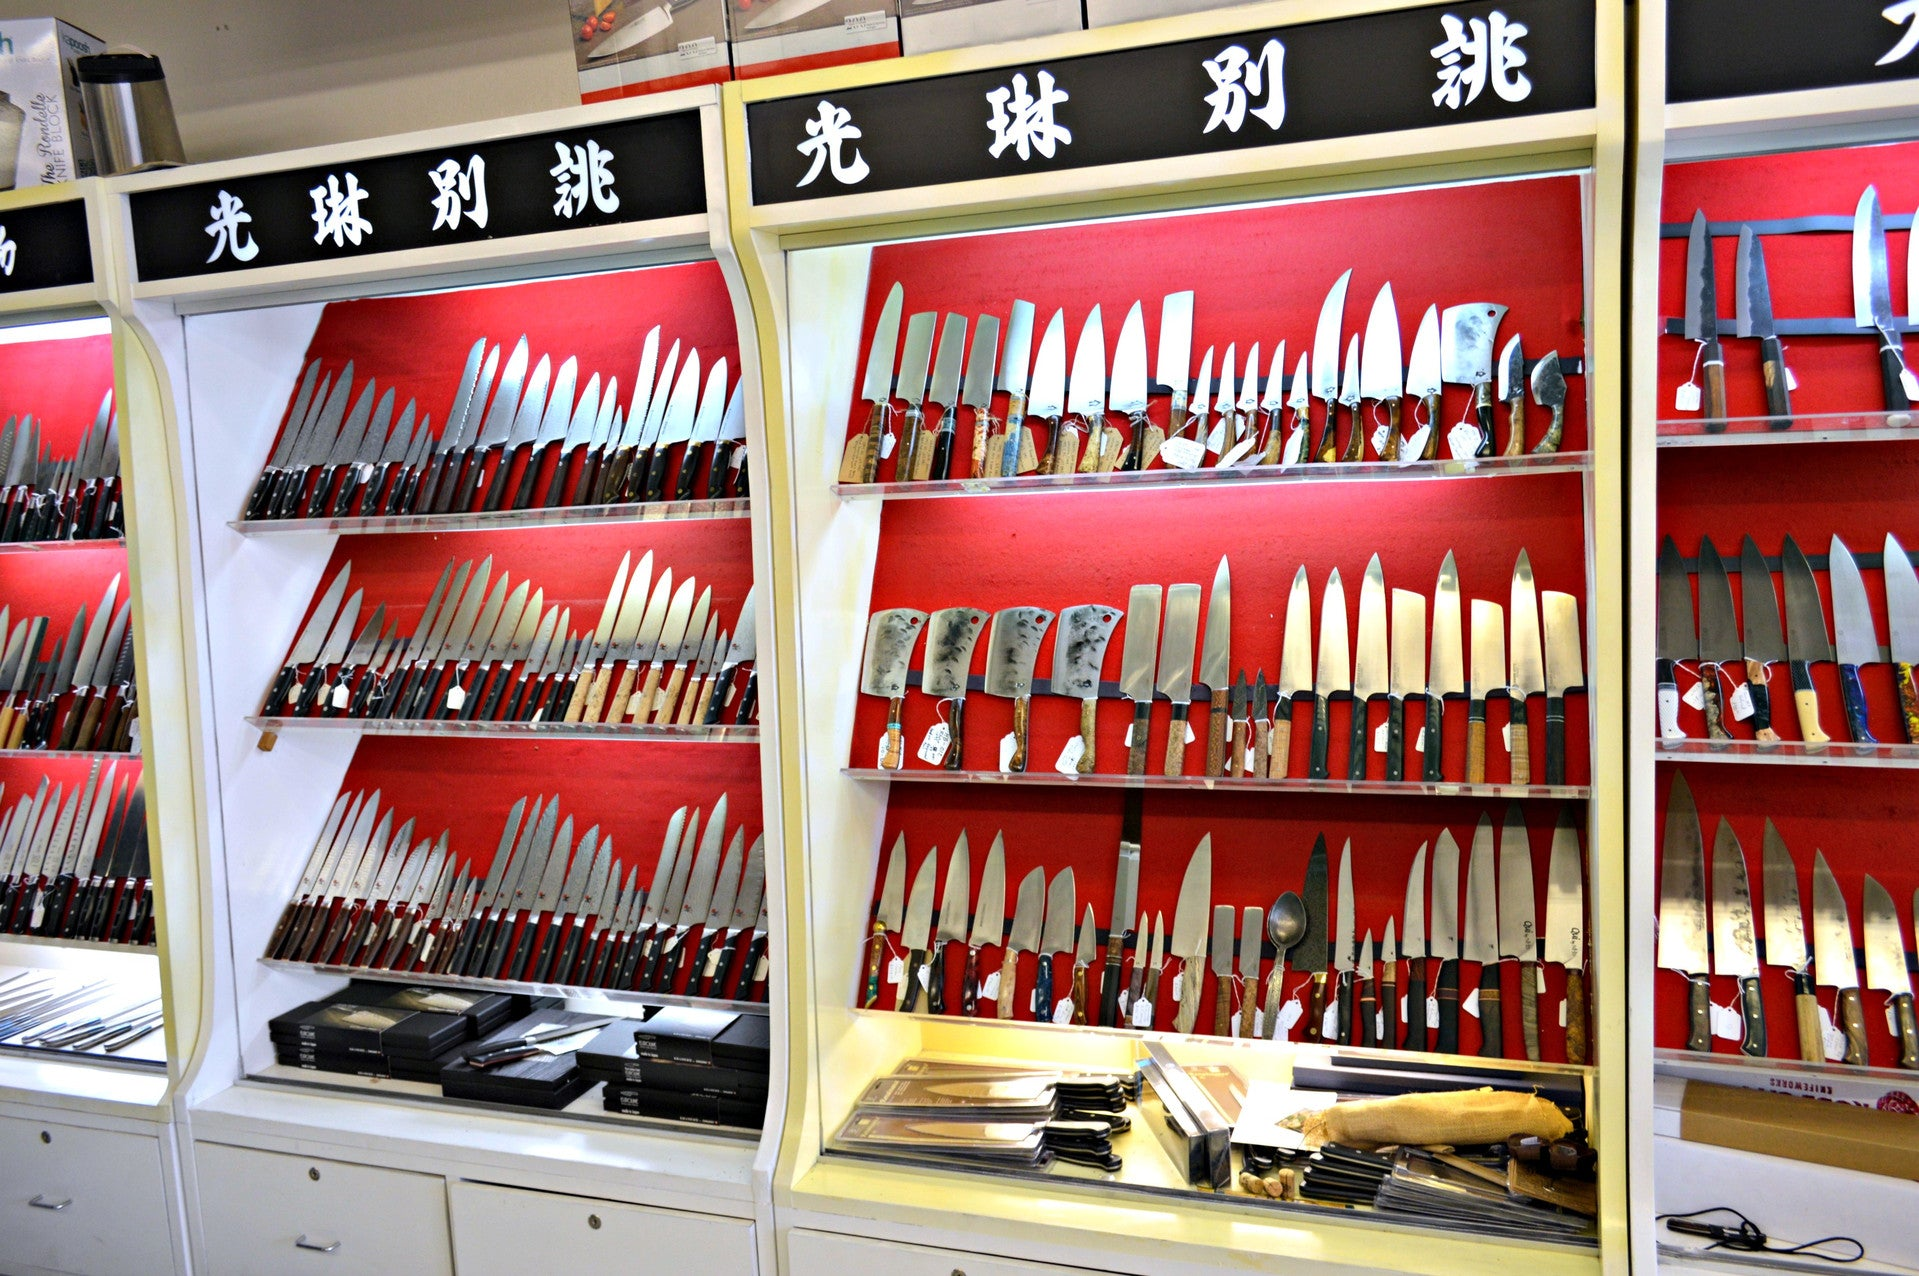 Texas' Largest Knife Shop